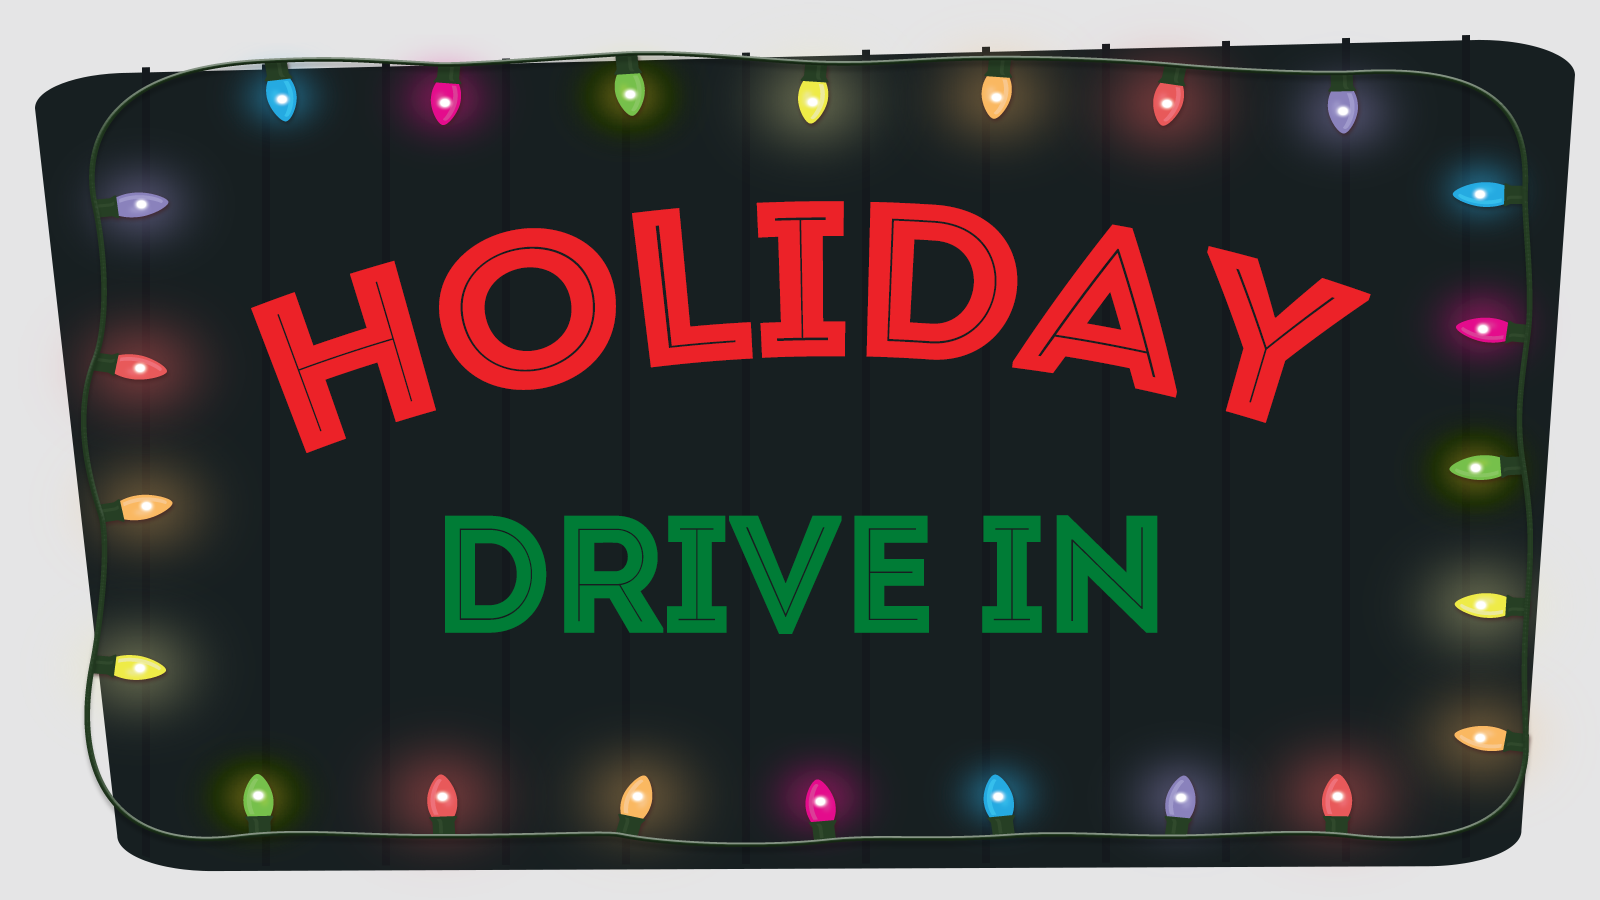 Holiday Drive In Website Button